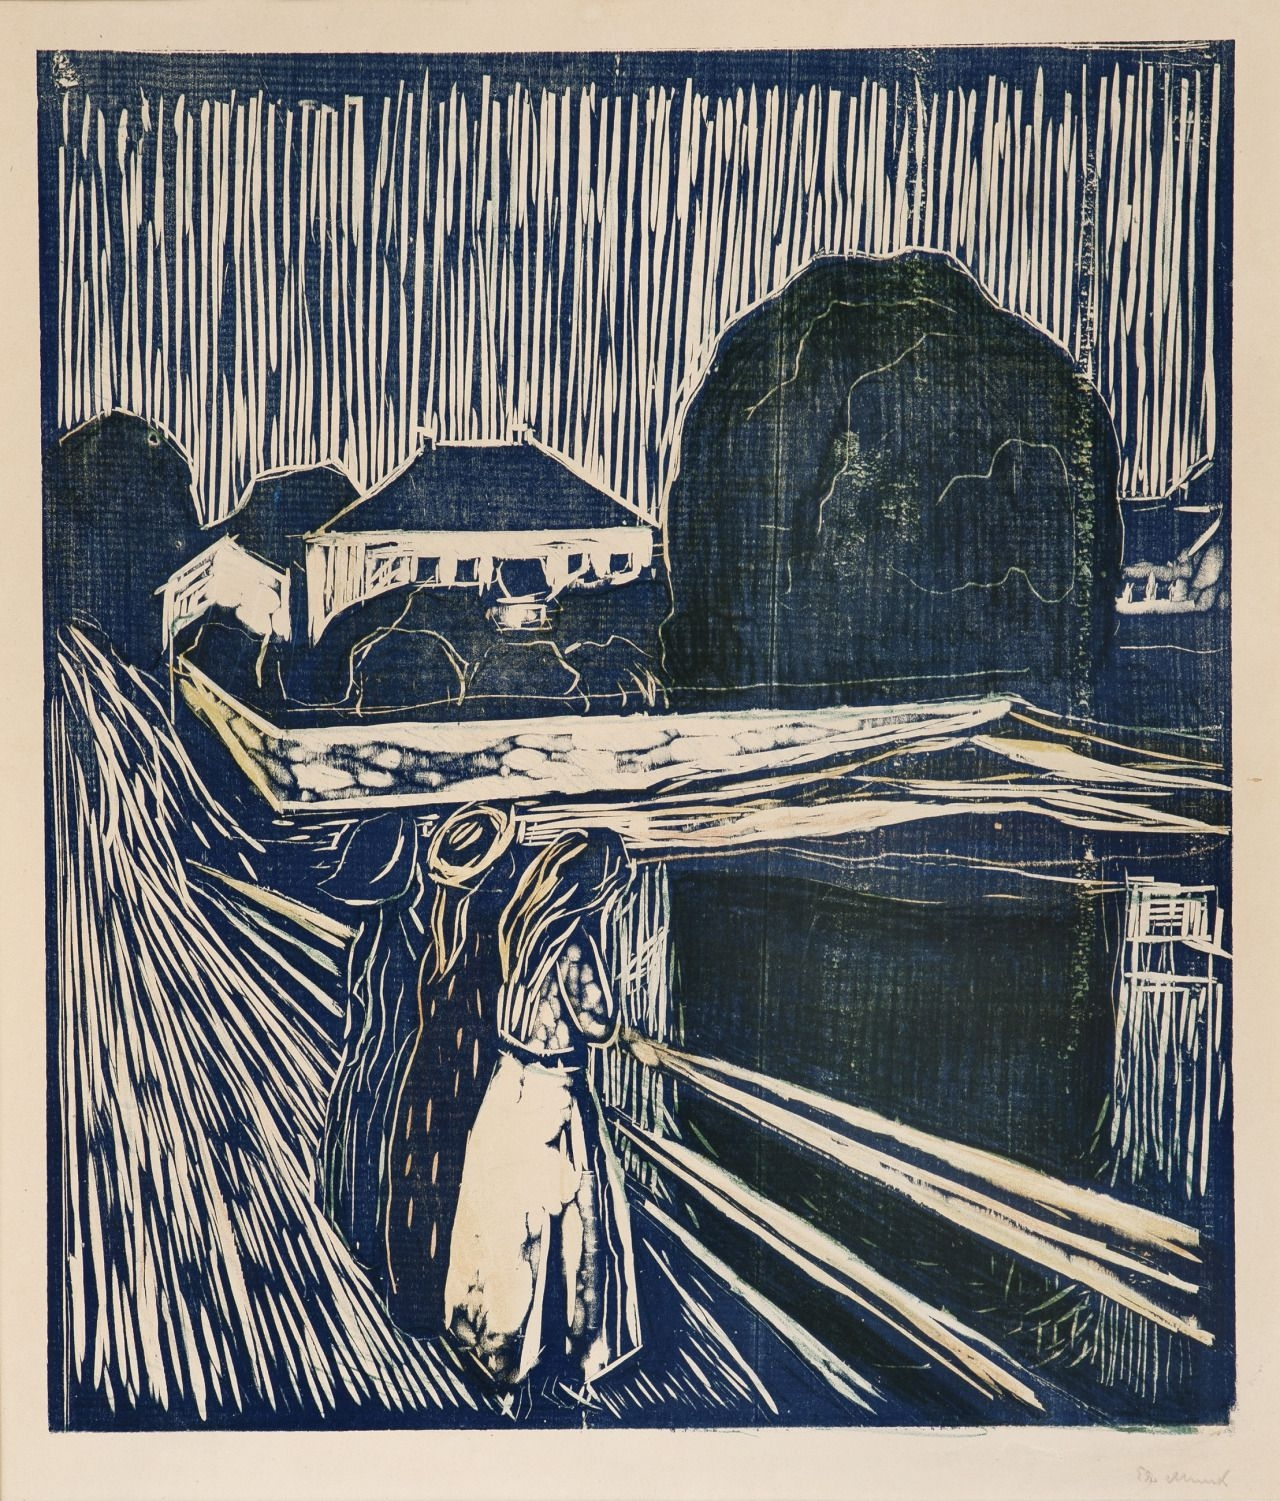 The Girls on the Bridge